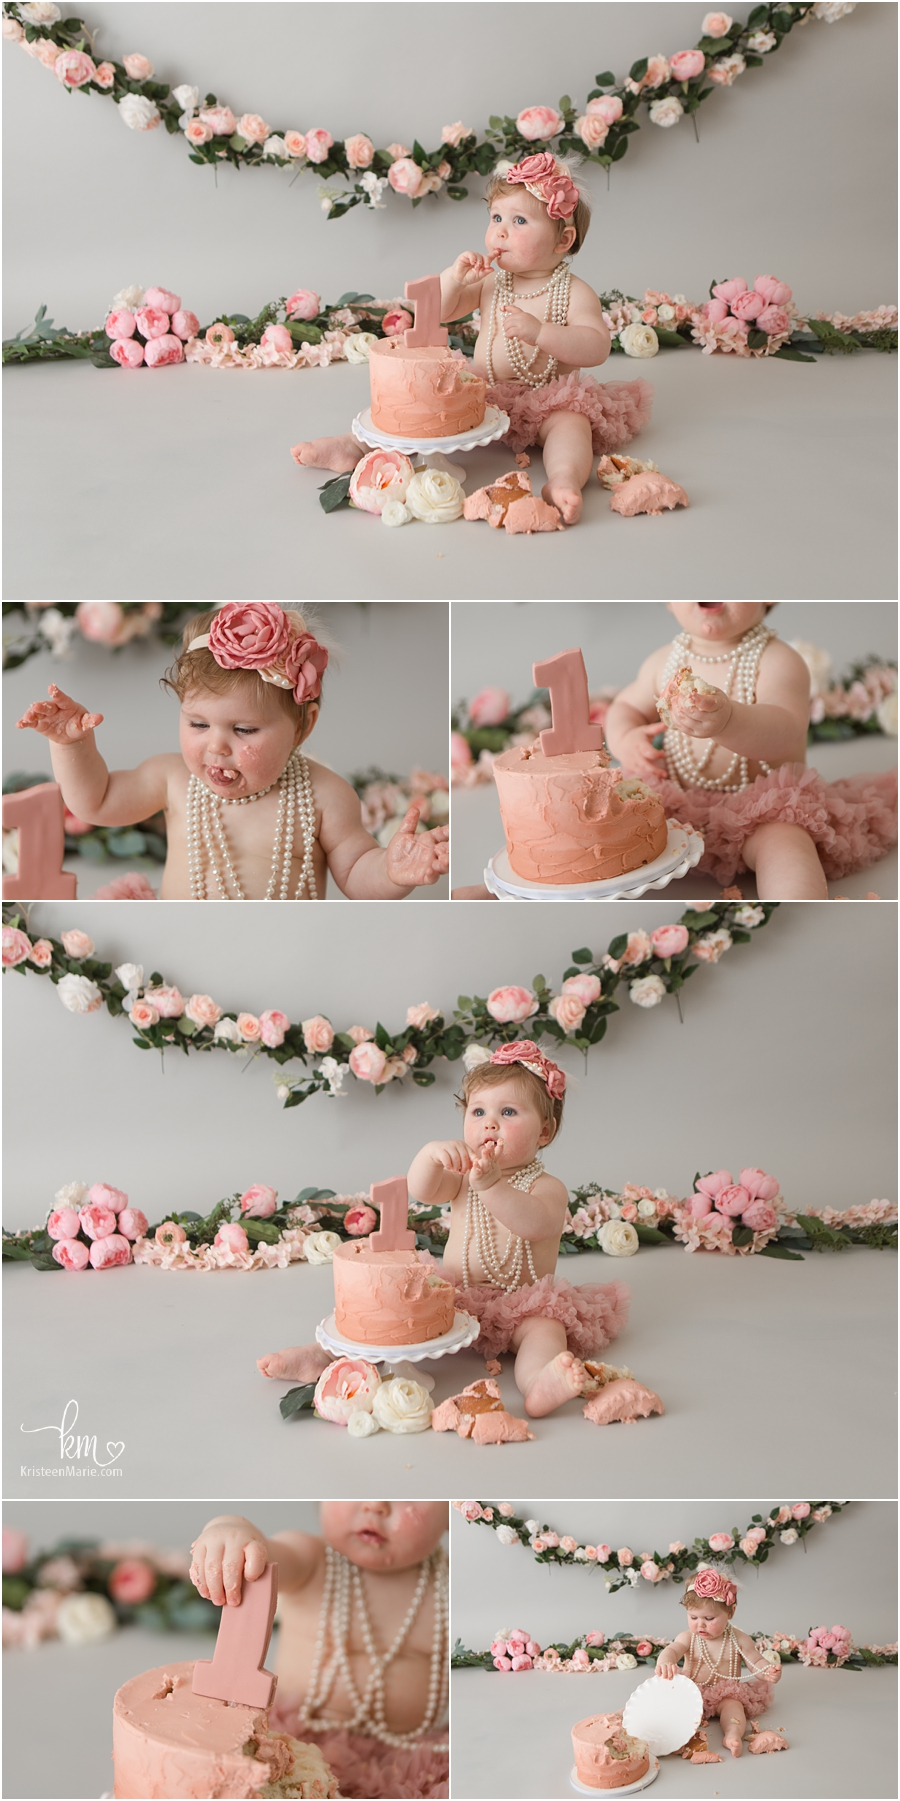 blush and pink 1st birthday cake smash session with birthday girl